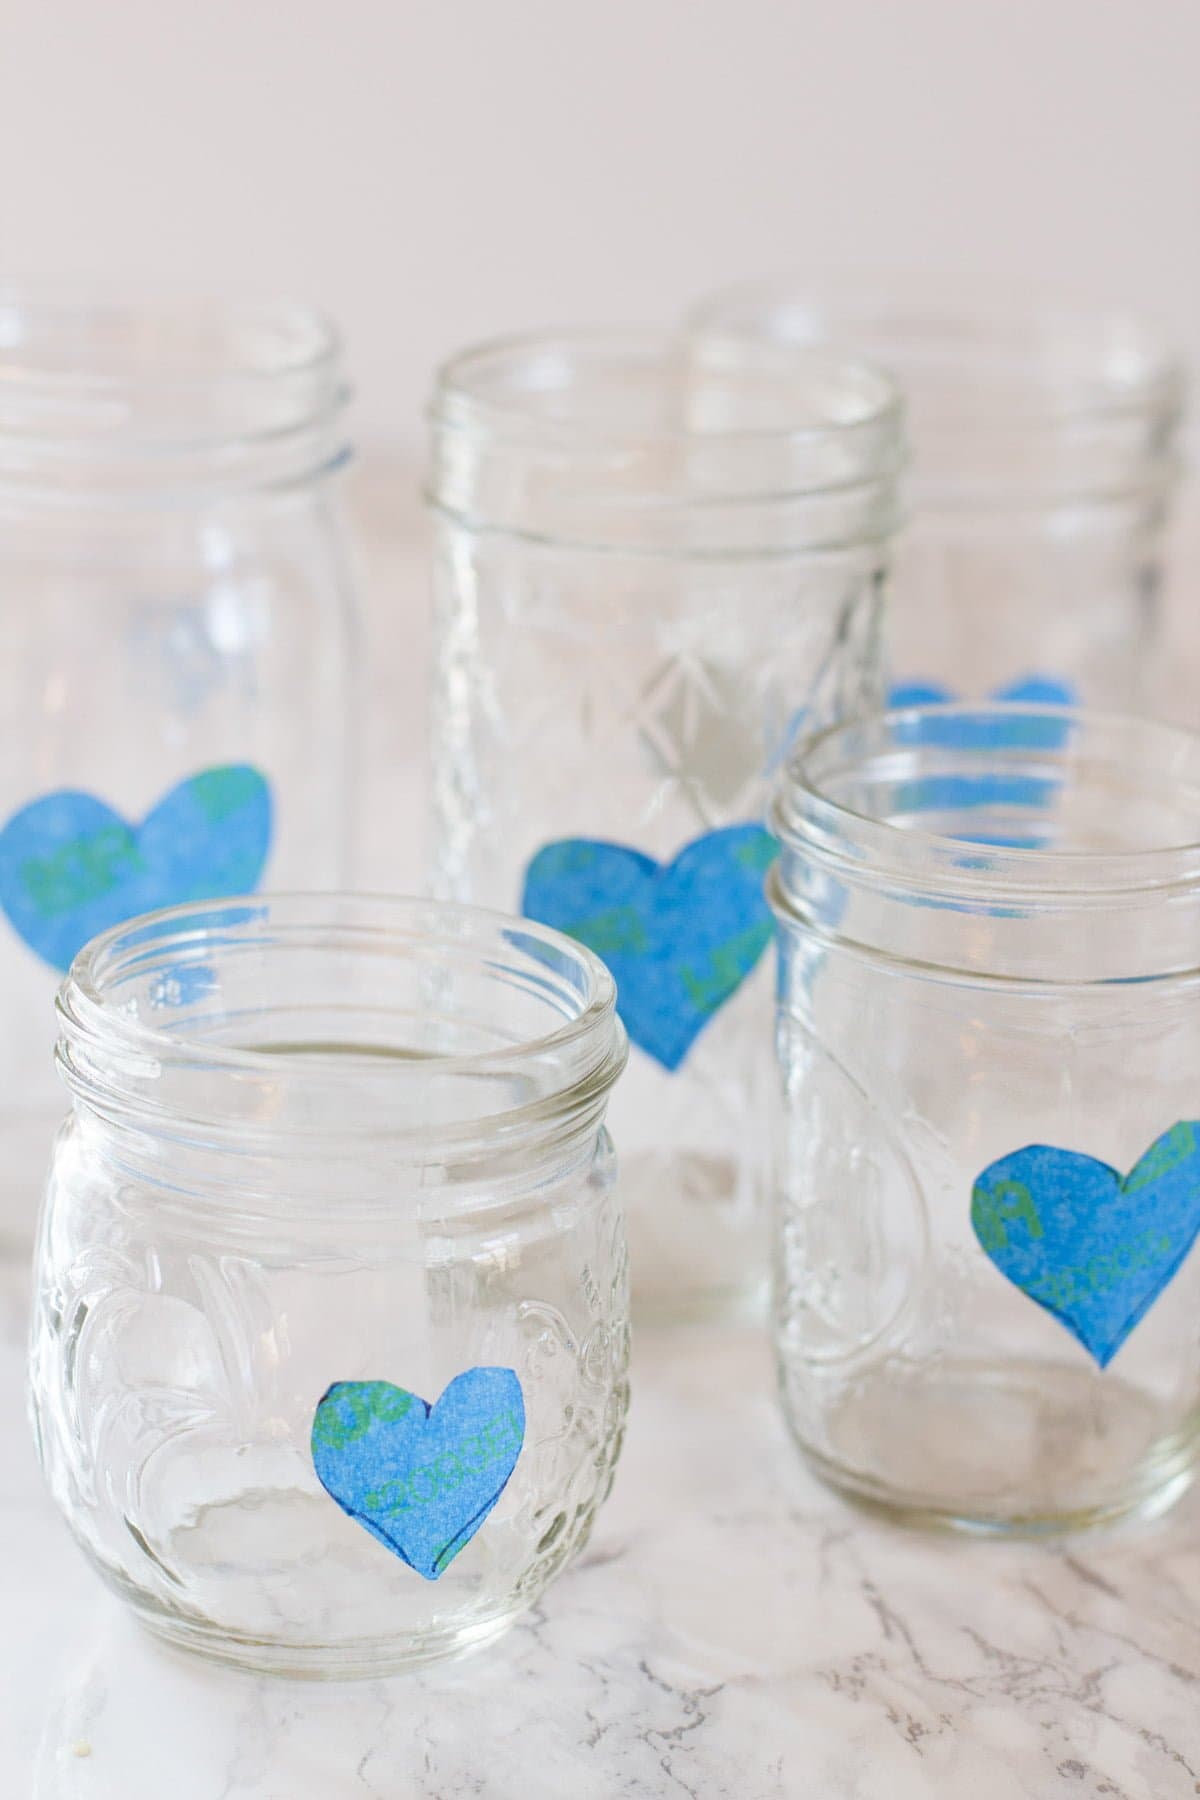 Cluster of mason jars, each with a heart made of painter's tape on the side